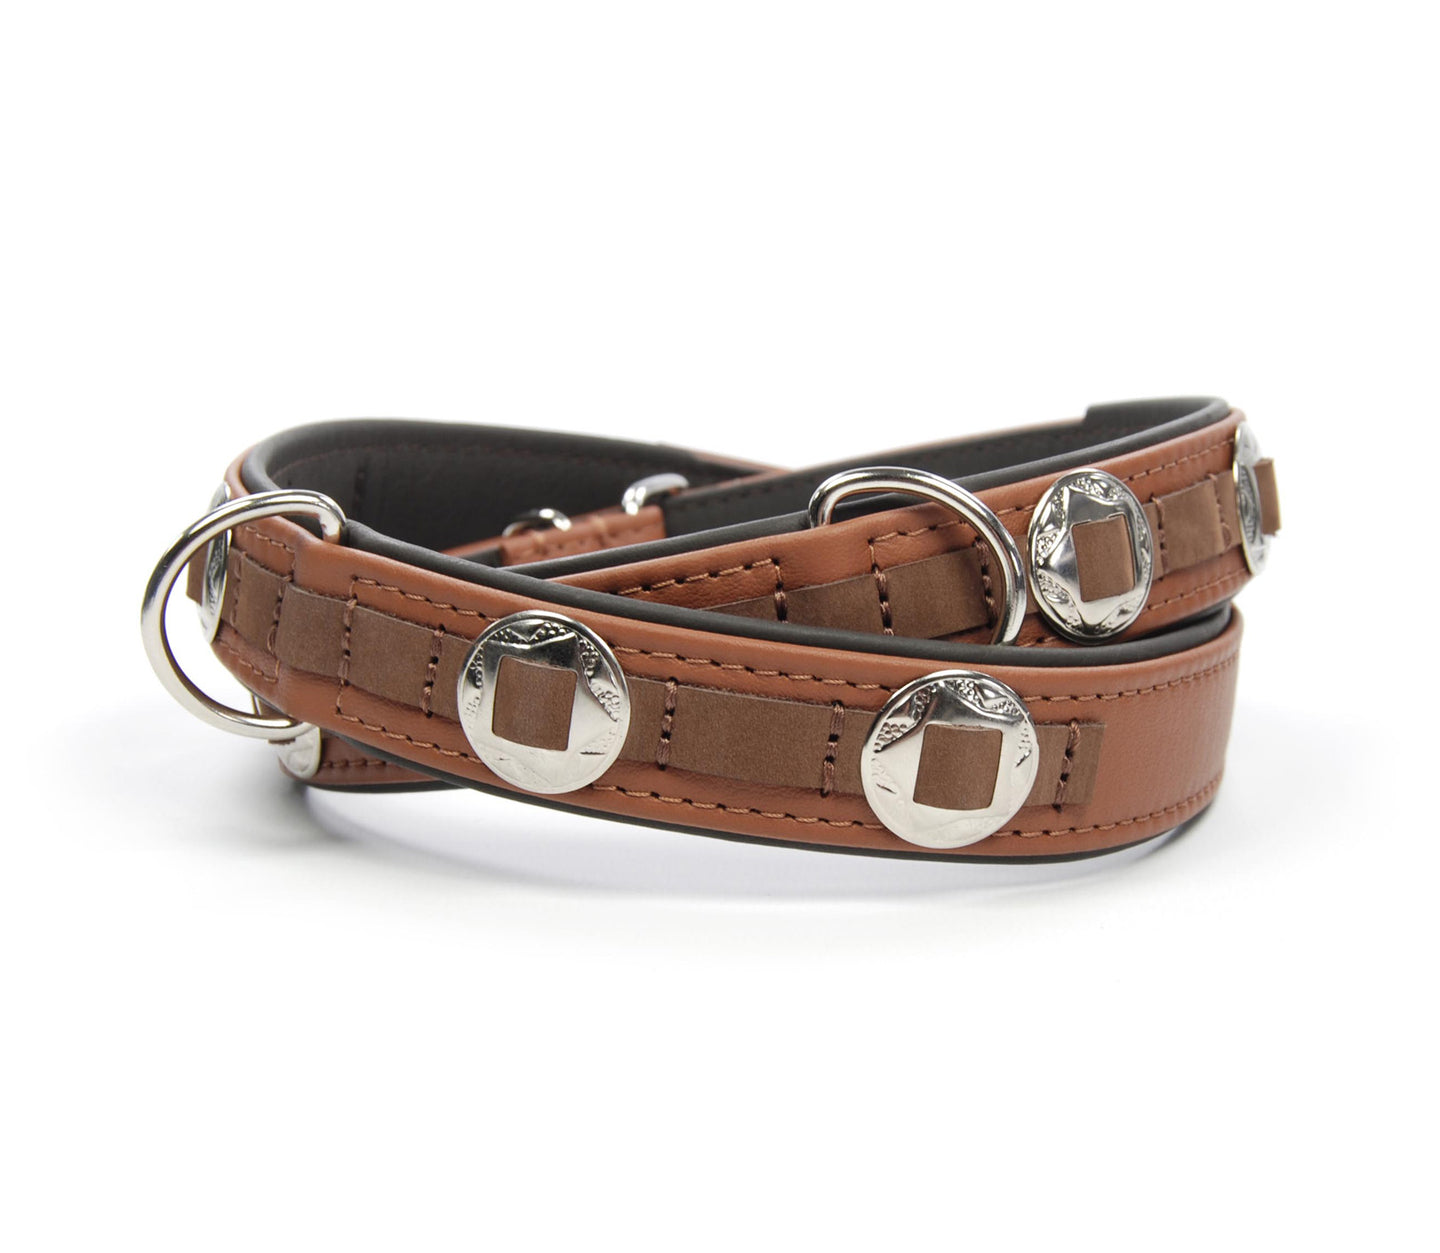 Handcrafted - Halsband Klassik Curved Concho Edition